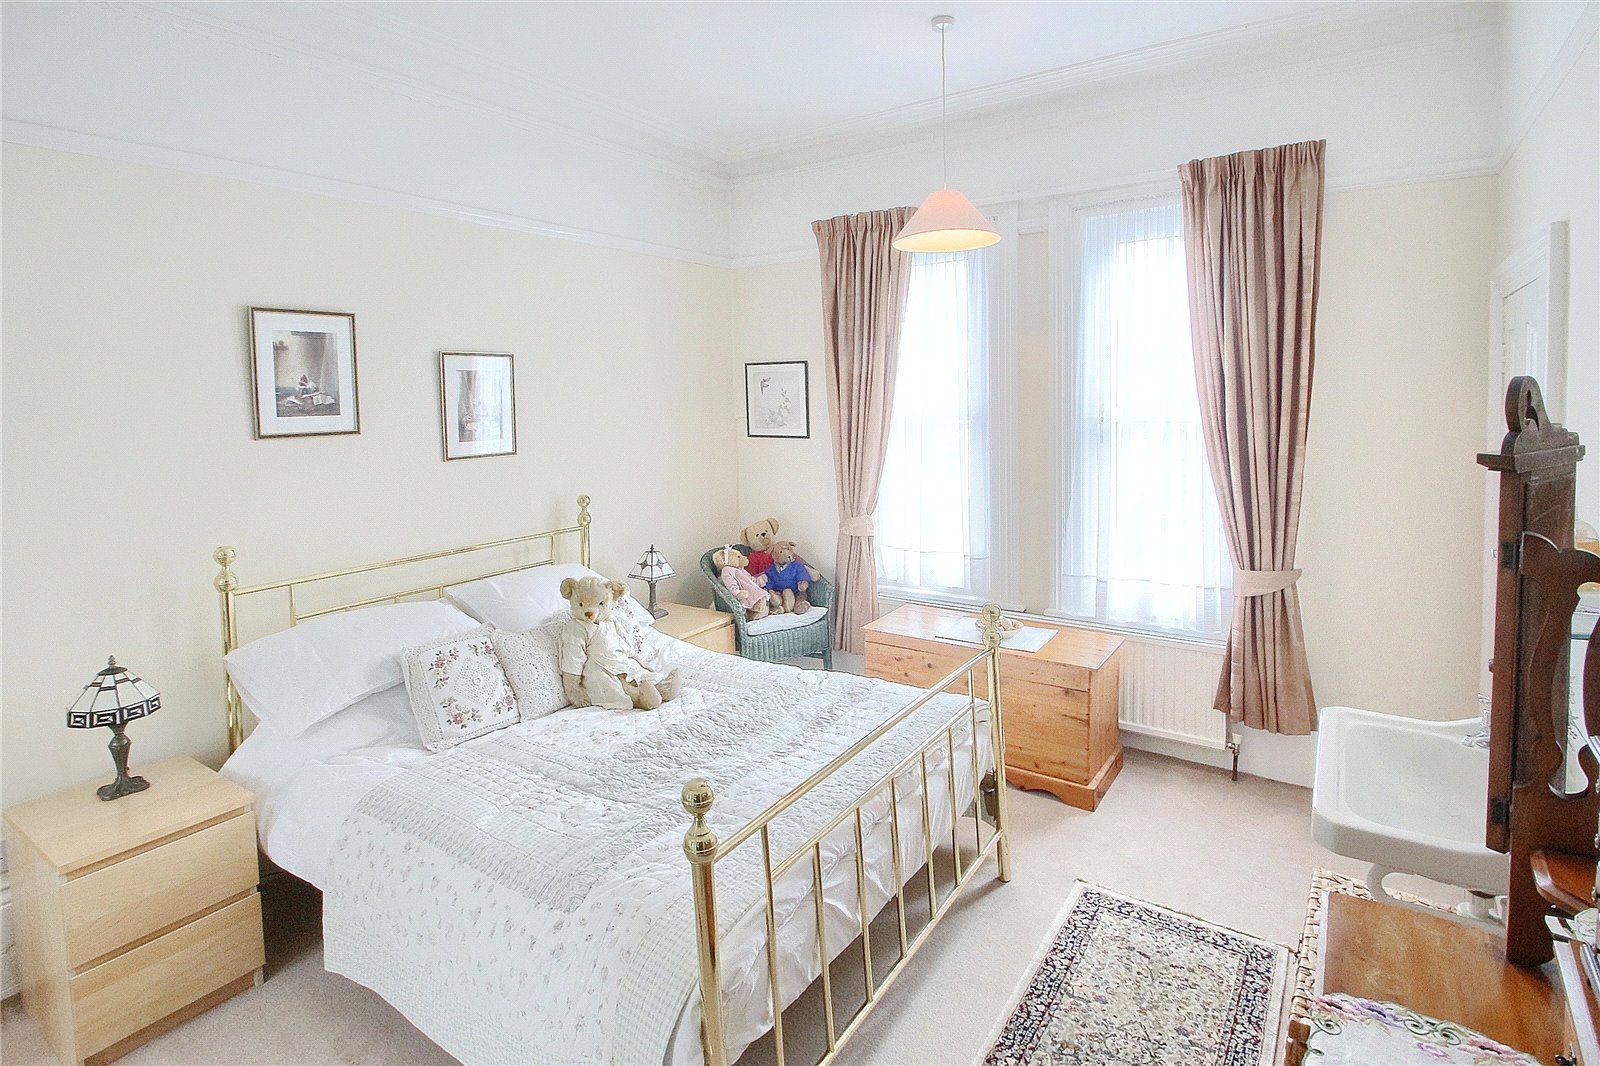 7 bed house for sale in Richmond Road, Stockton-on-Tees  - Property Image 12